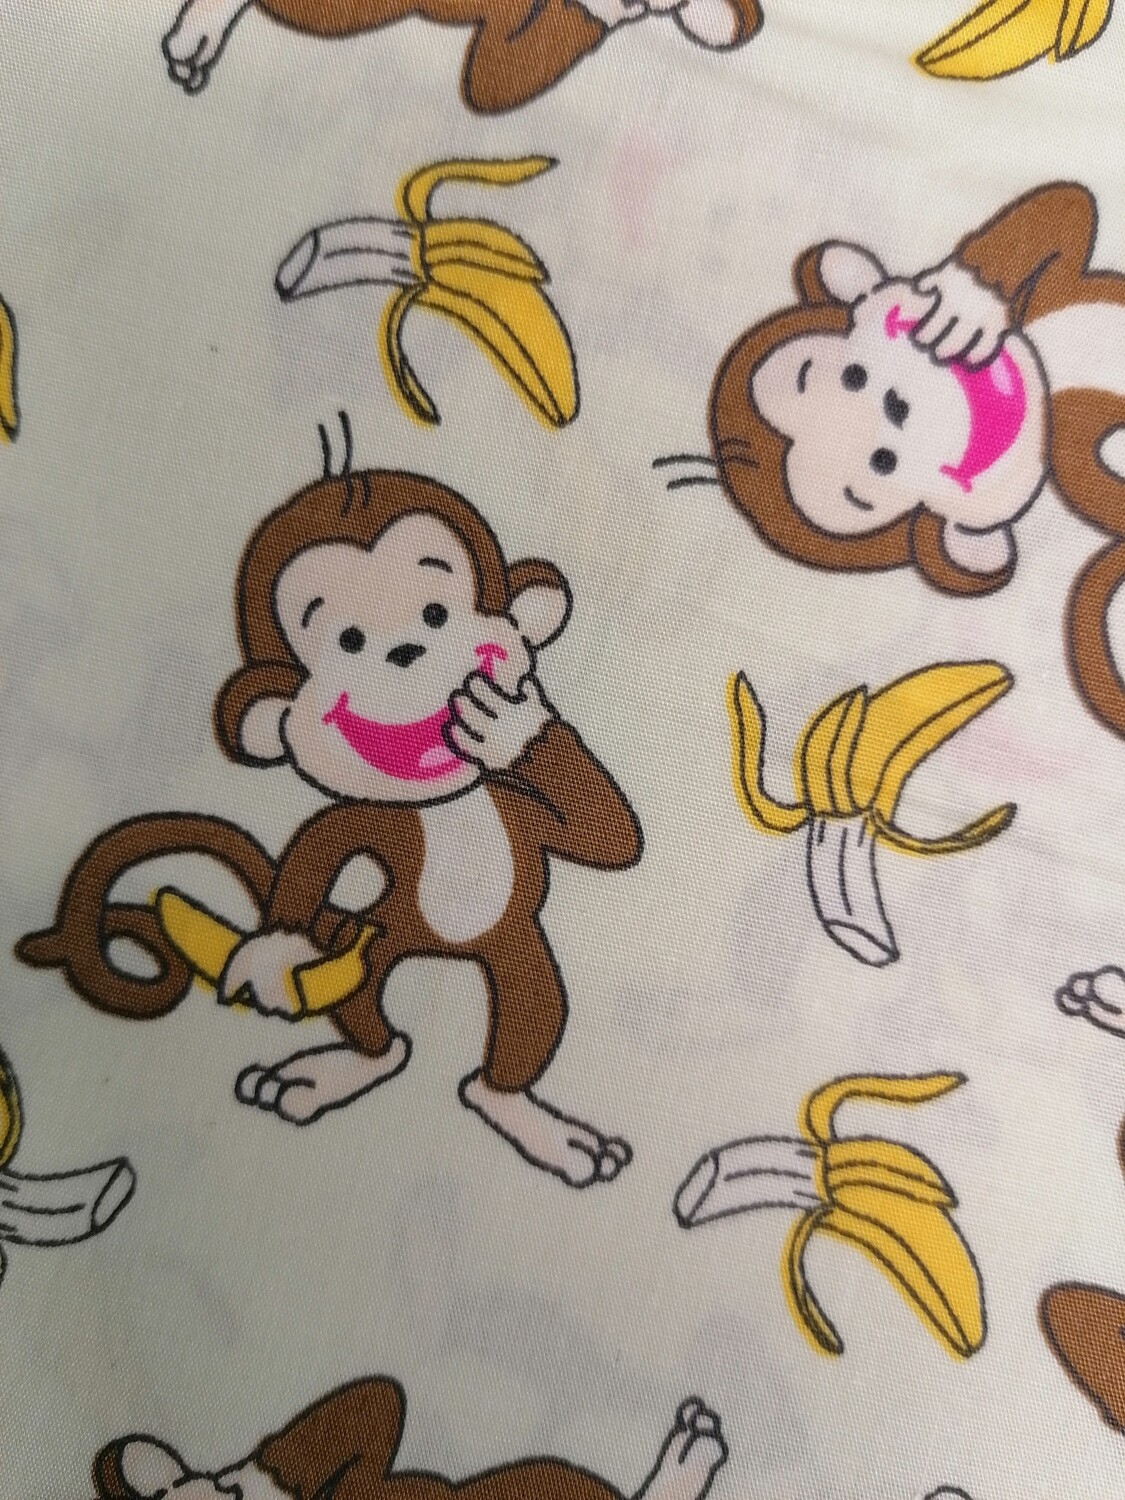 Cheeky Monkey on cream background